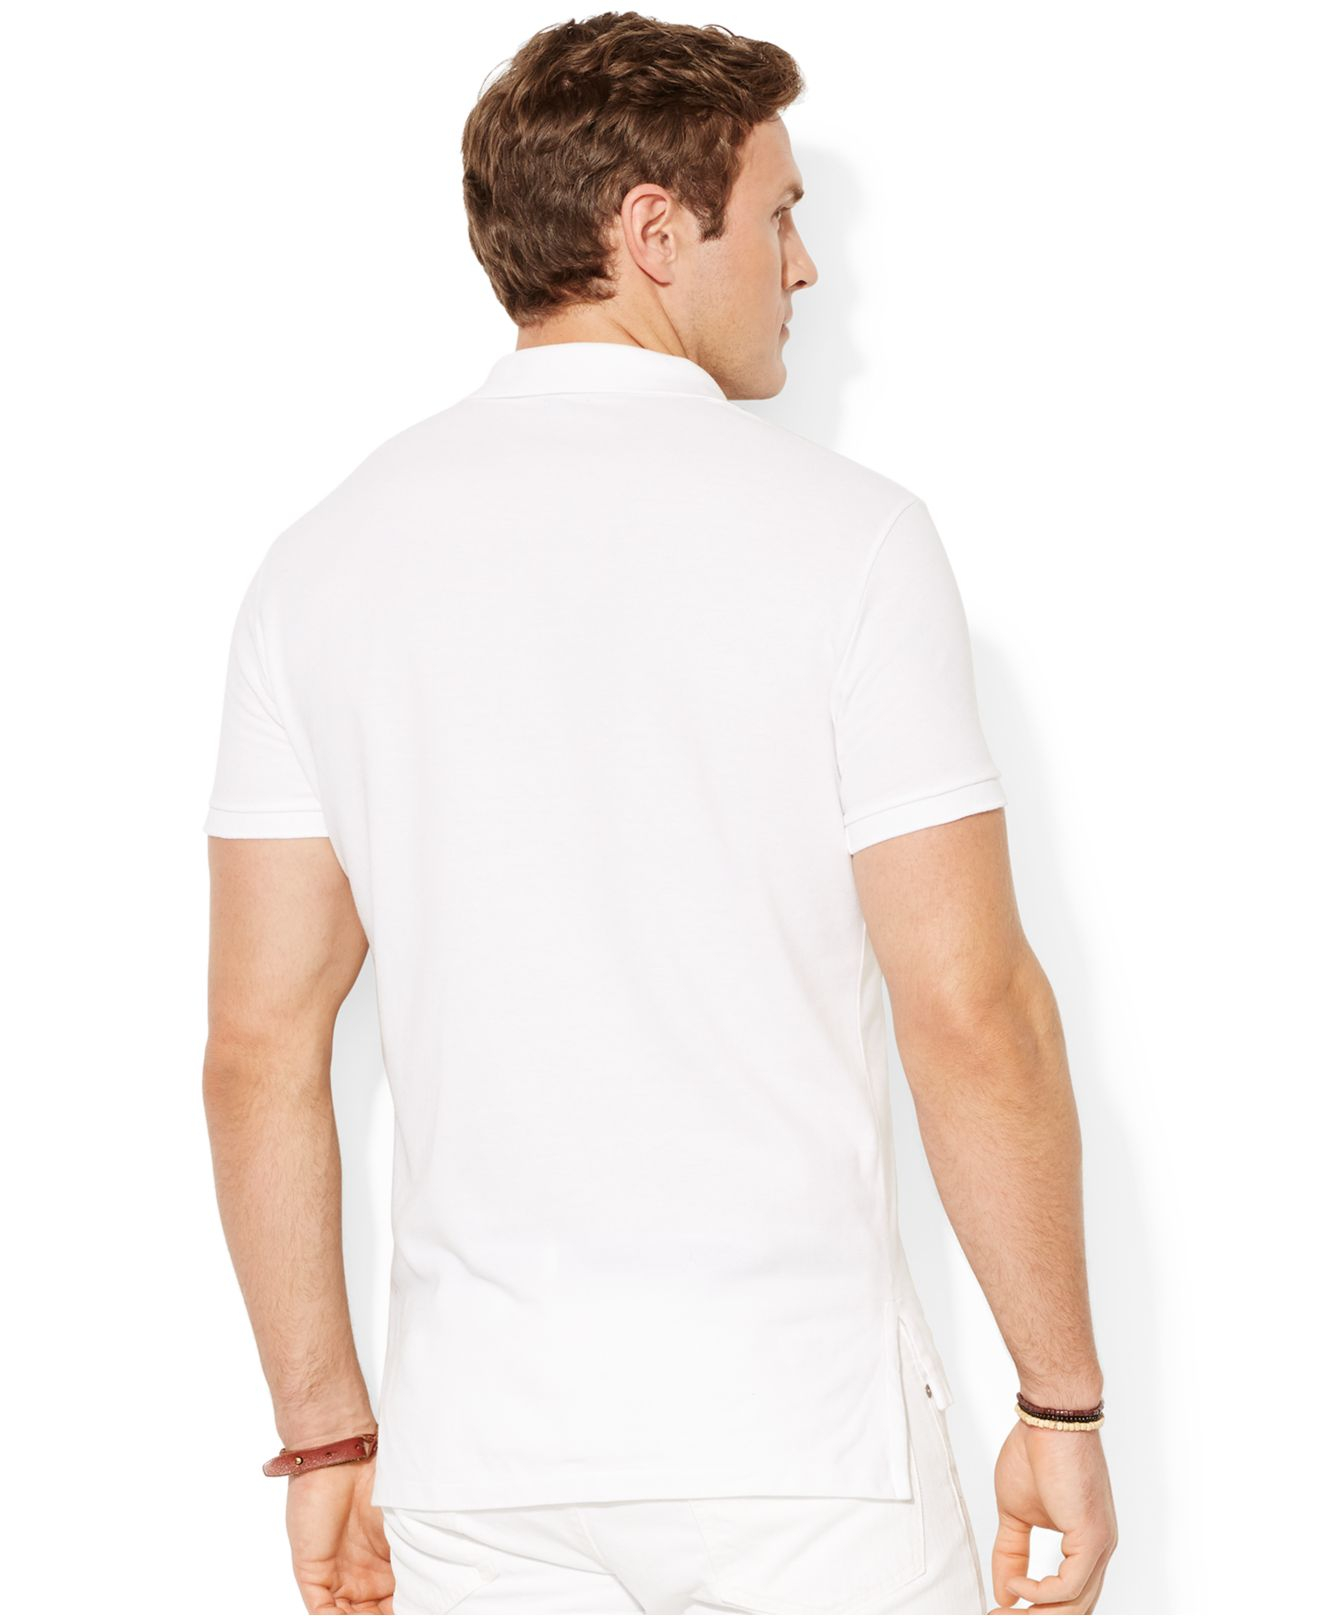 a461ddc2c Jcpenney Mens Polo Shirts - DREAMWORKS